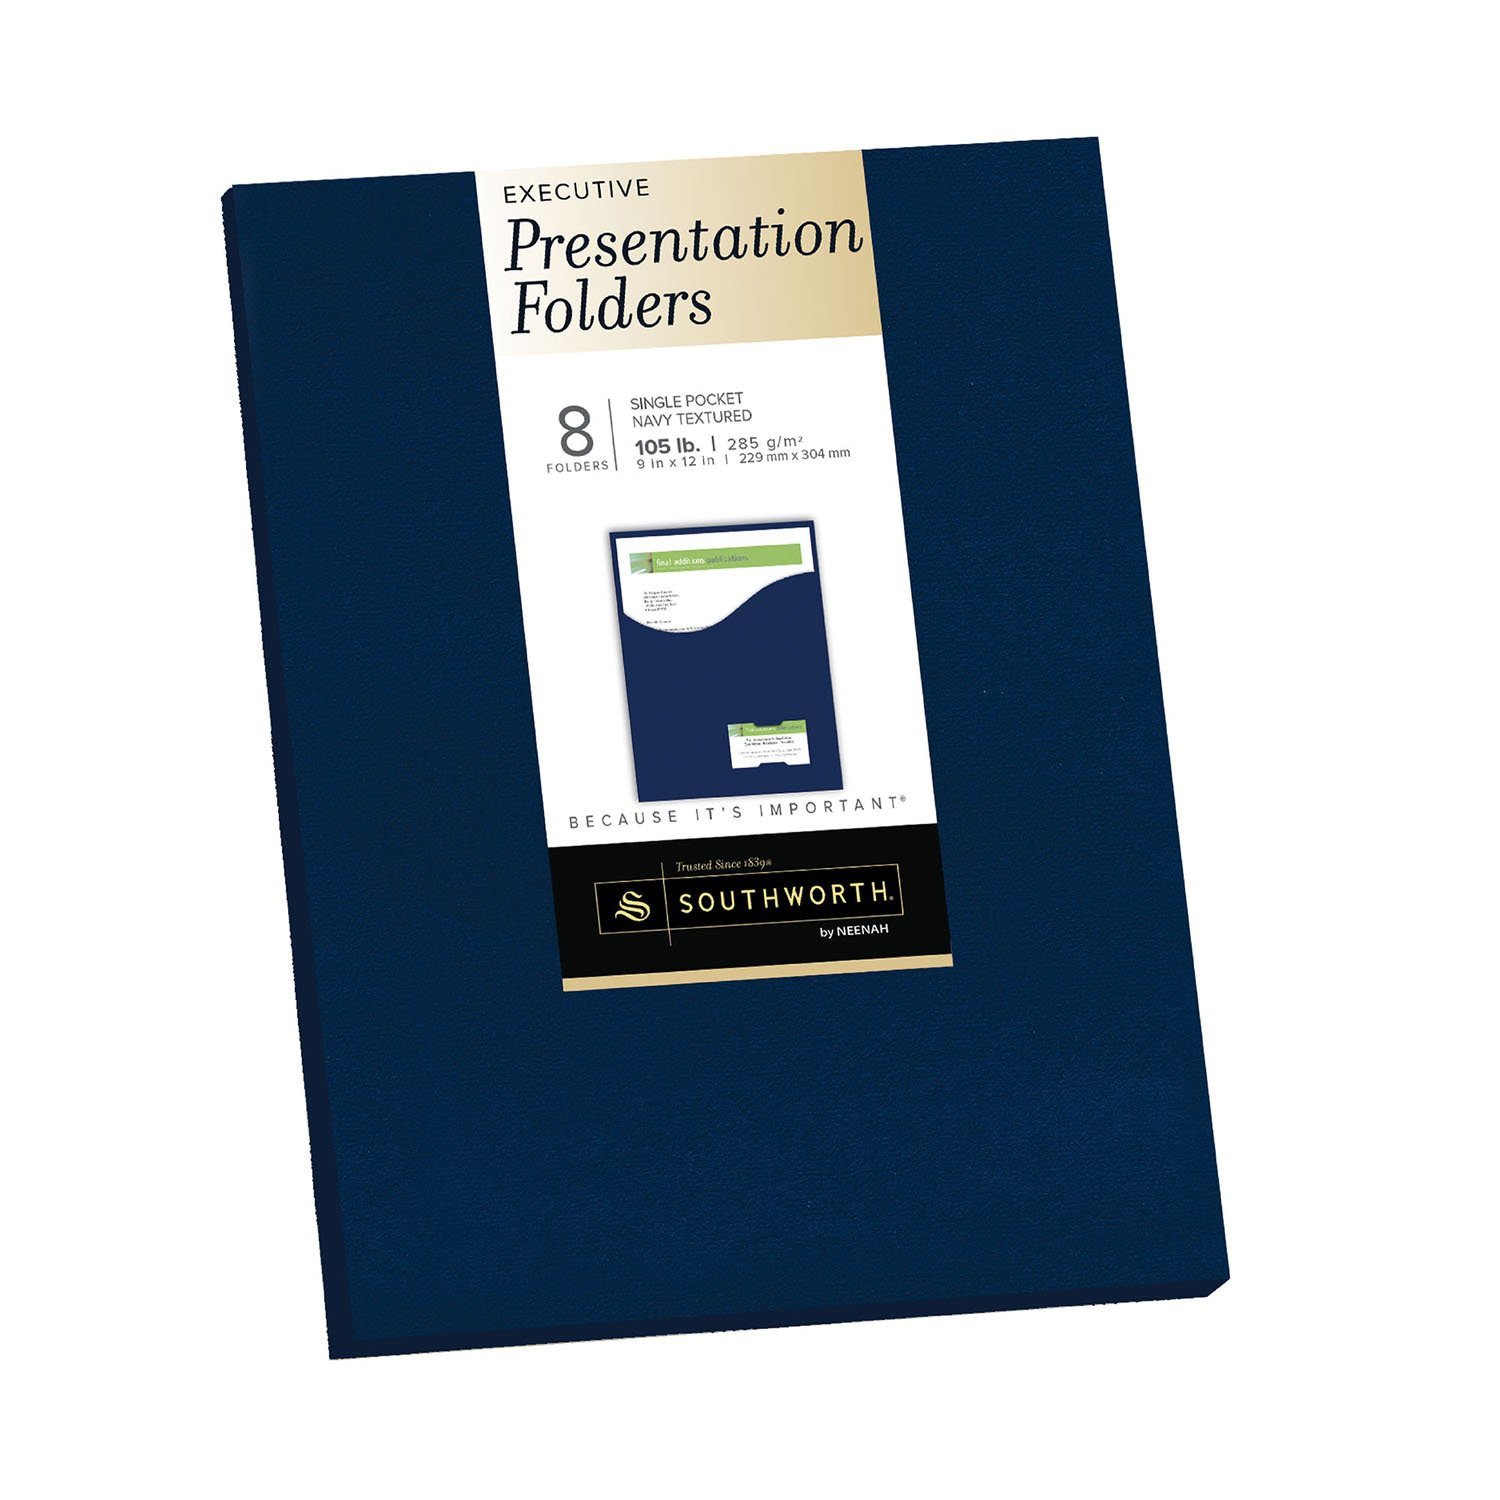 Southworth Resume Presentation Folders, 9'' x 12'', 105 lb/285 GSM, Single-Pocket, Felt Finish, Navy, Cardstock, 8 Ct. (98874) by Southworth